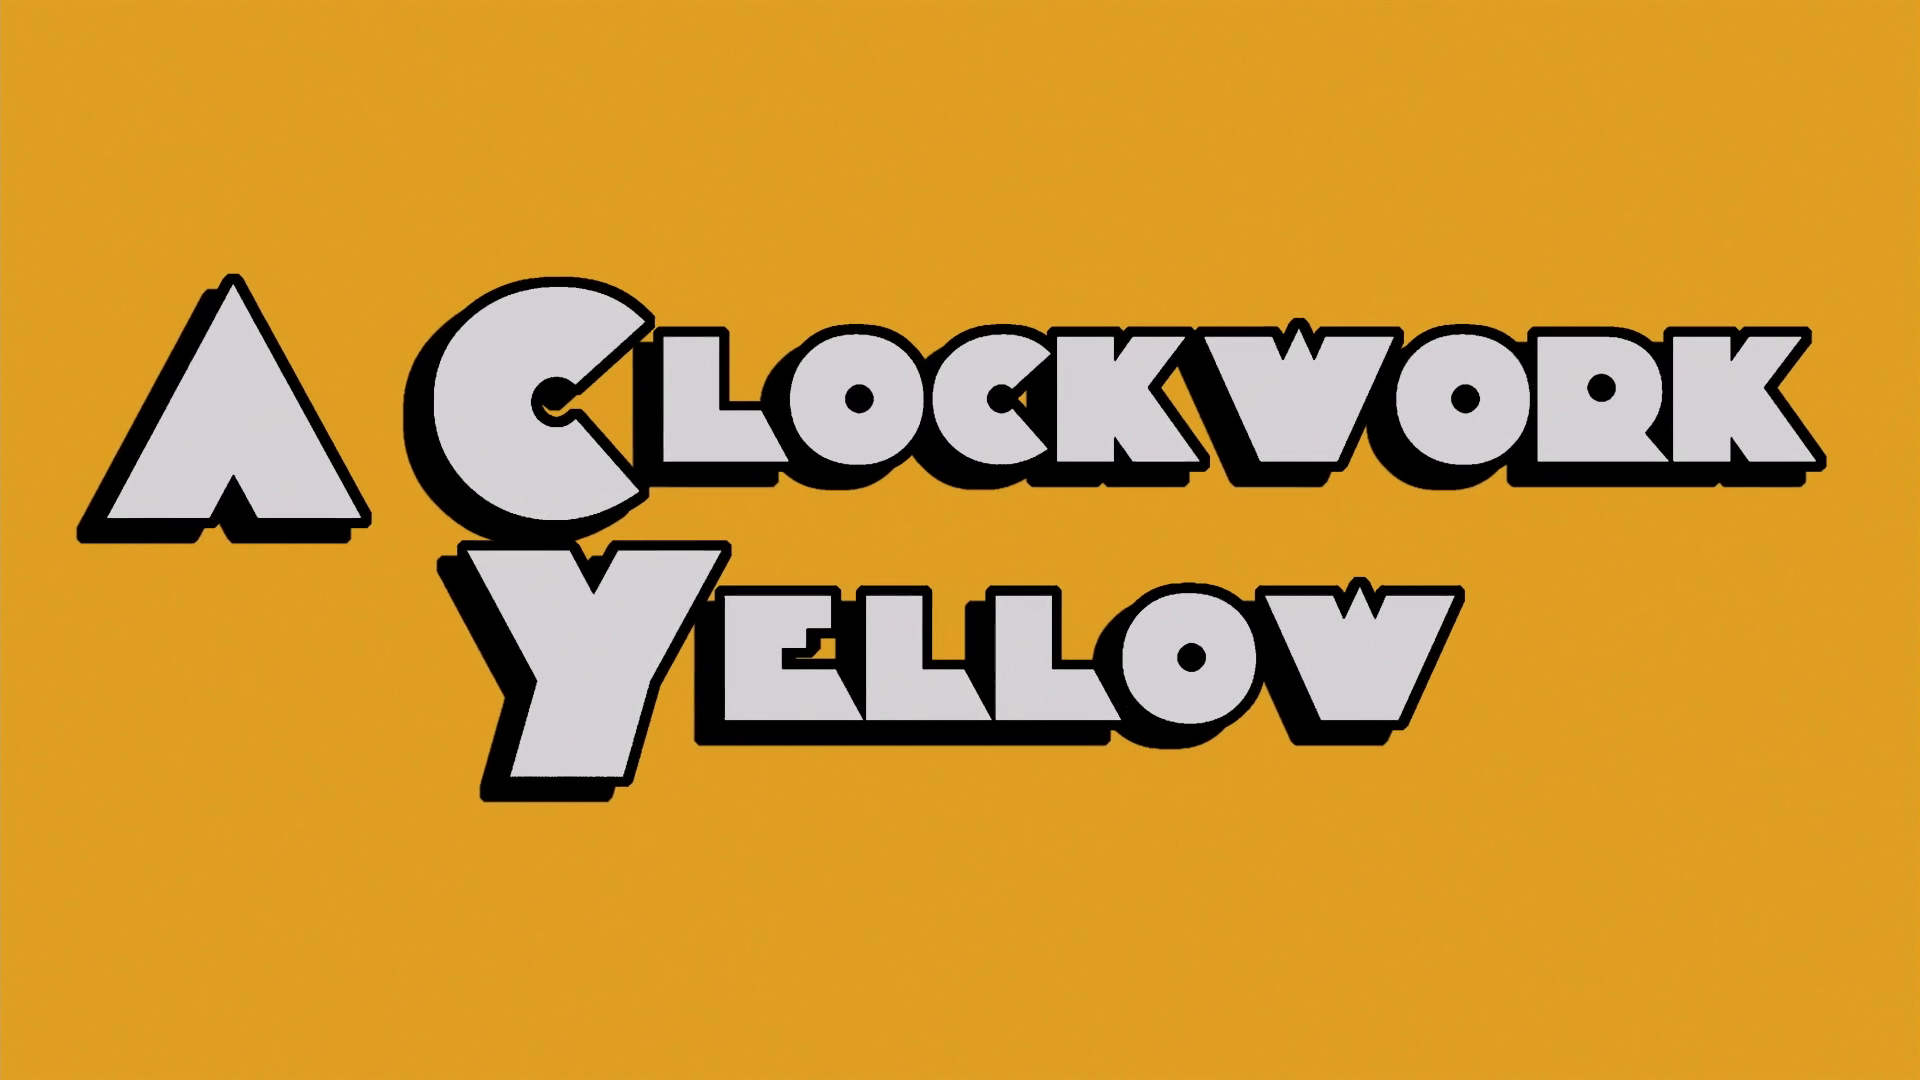 A Clockwork Yellow.png